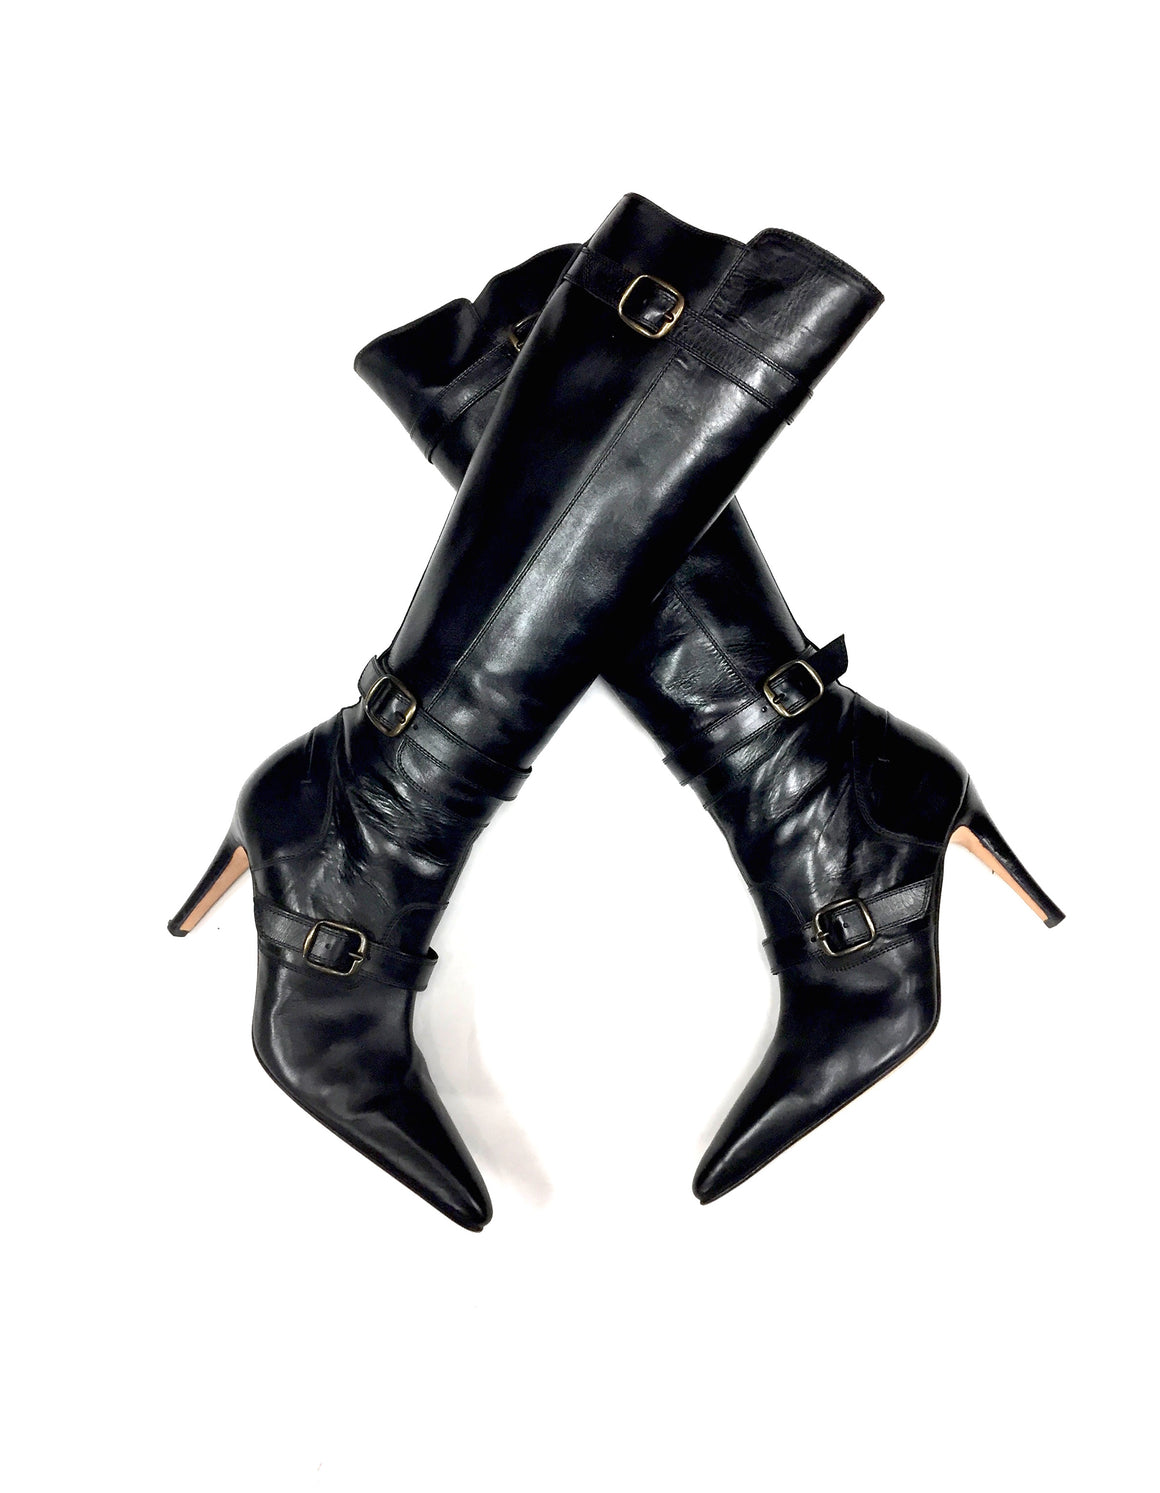 MANOLO BLAHNIK Black Leather Triple Buckled Strap Tall Hi-Heel Boots Size: 38.5